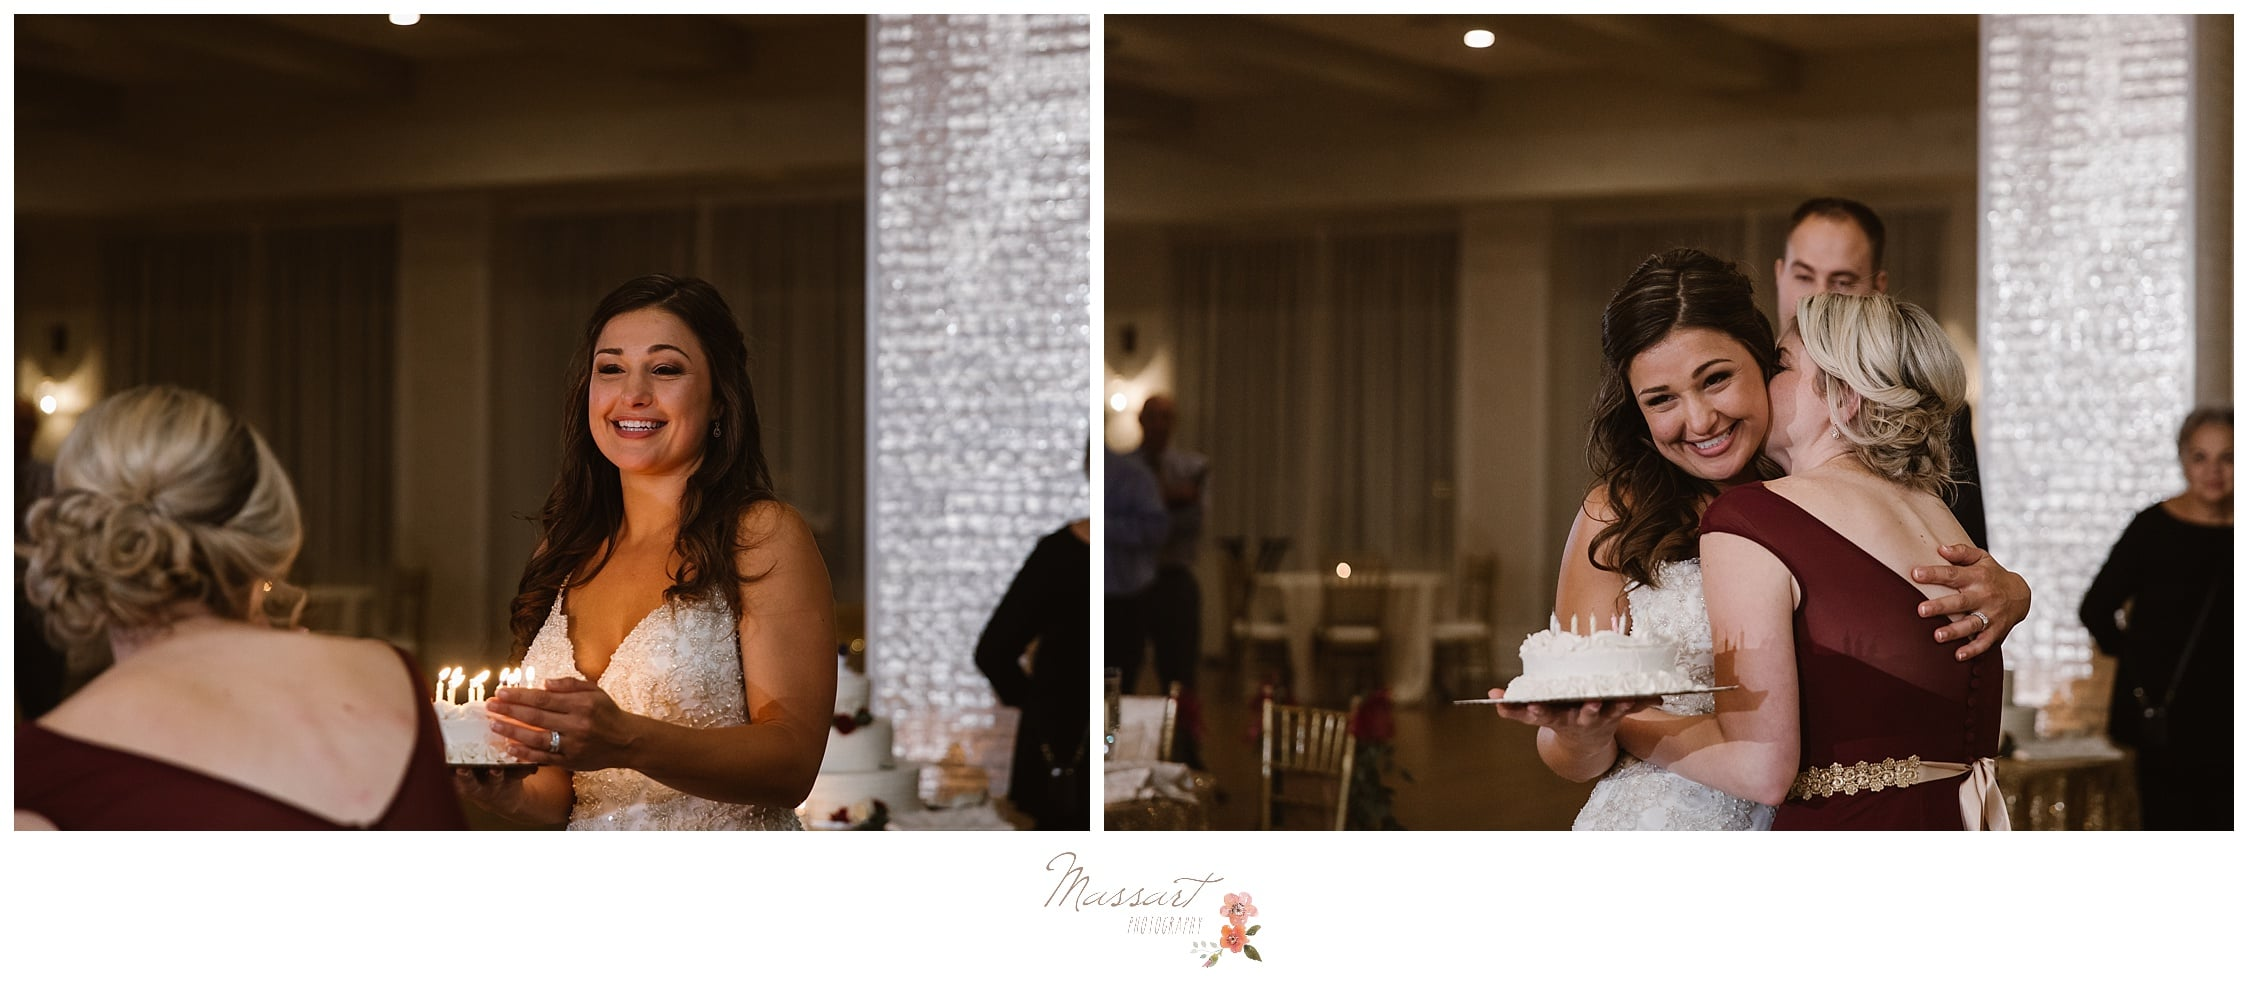 Bride brings out a cake for her best friend's birthday at the wedding reception photographed by Massart Photography RI